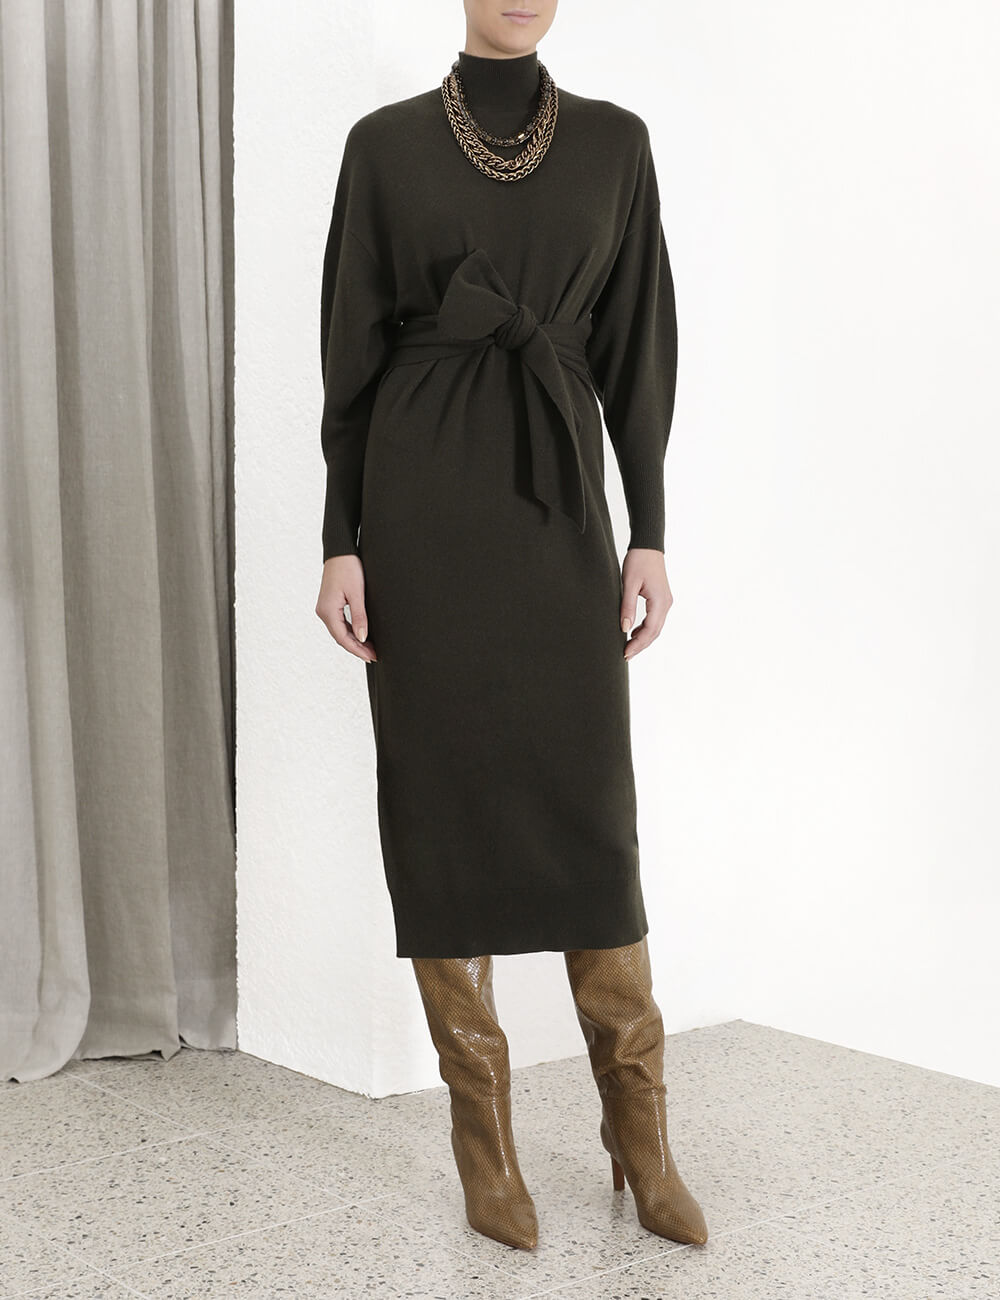 Sabotage Tie Knit Dress